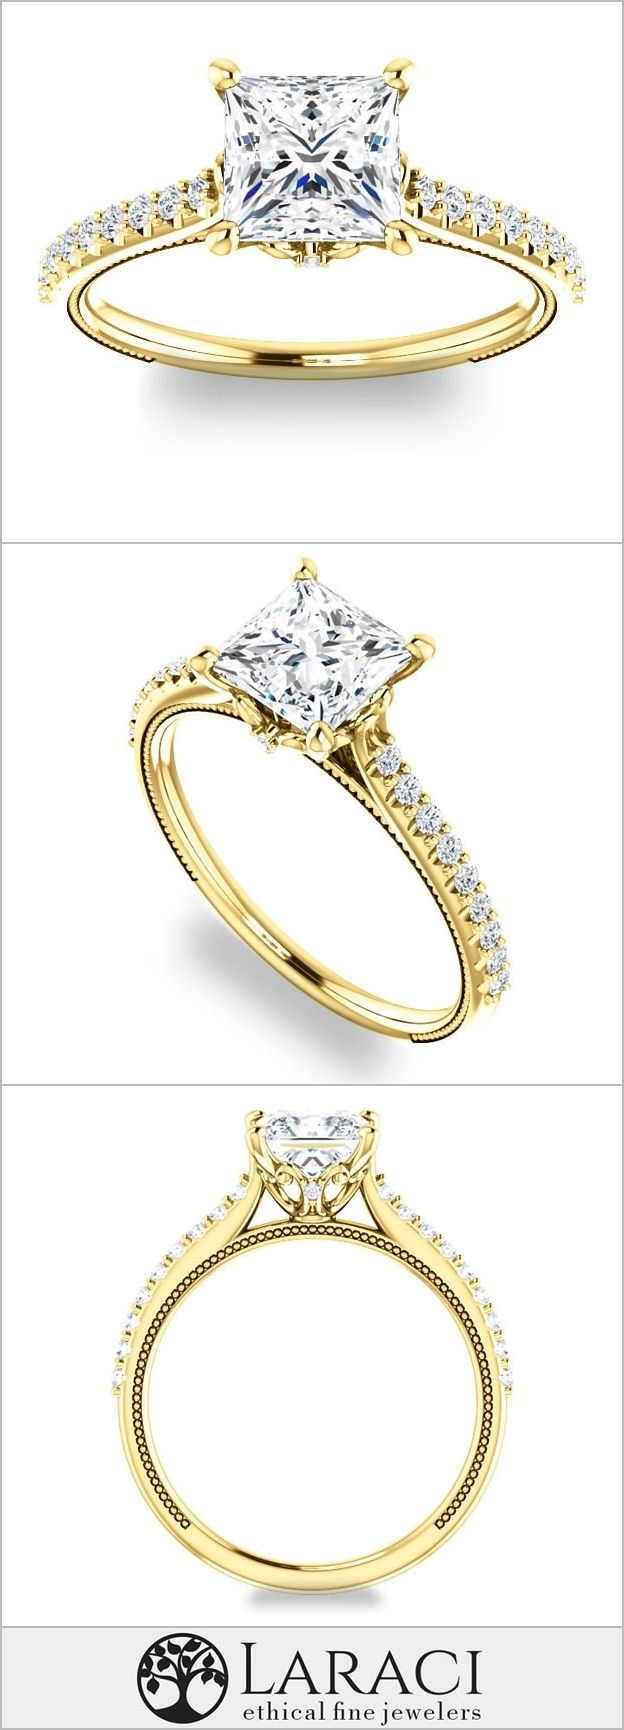 Moissanite 1.3ct (6mm) Princess NEO Colorless set into a 14k Yellow Gold Engagement Ring with Brilliant Round Accents